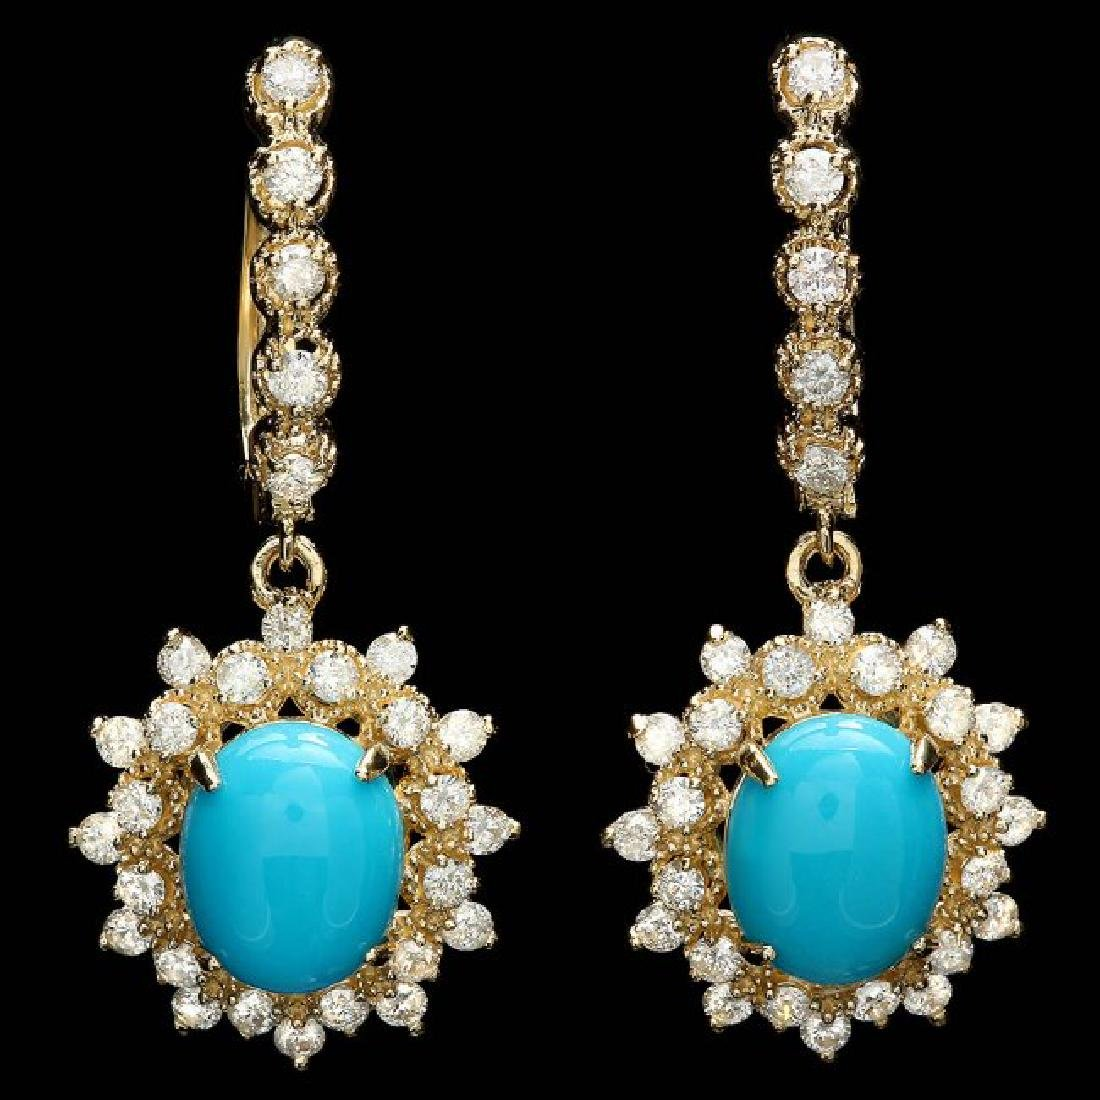 14k Gold 4.00ct Turquoise 1.65ct Diamond Earrings